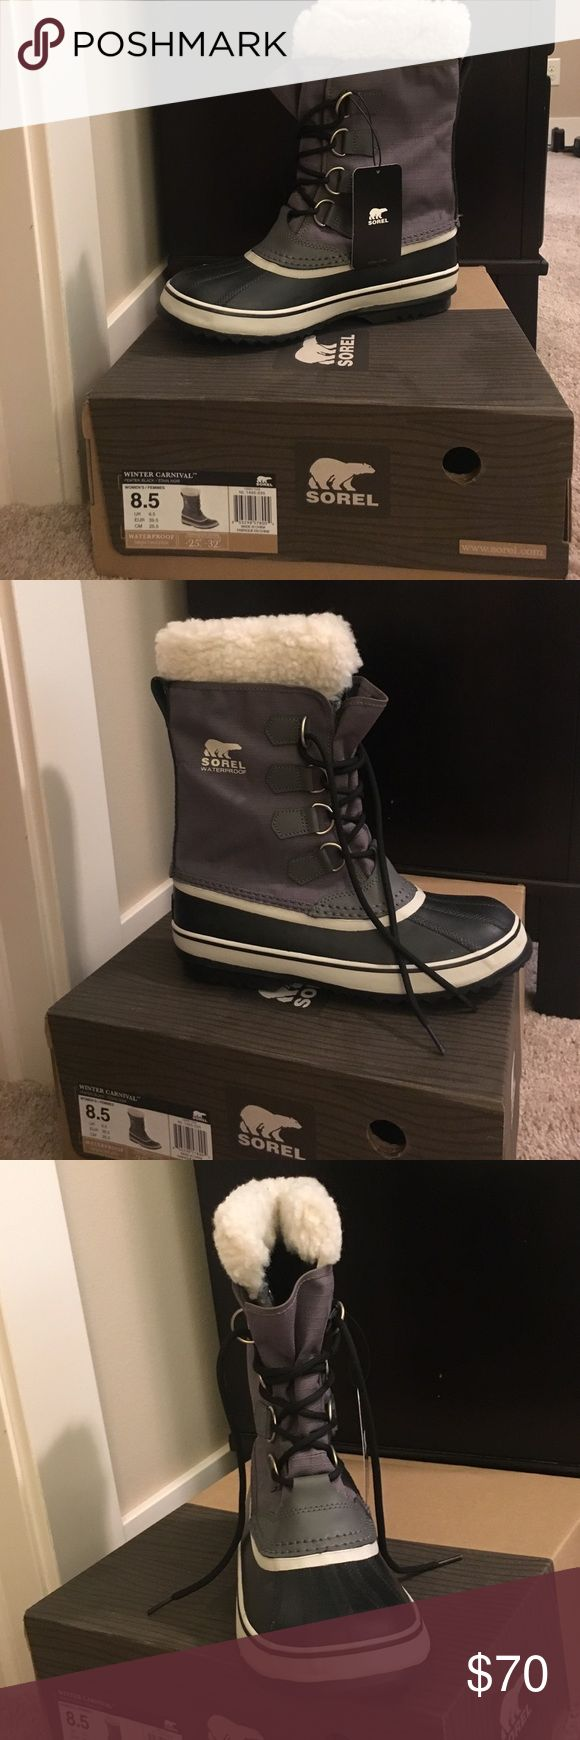 Sorel snow boots Brand new with box never worn! Gray and black with ivory padding on the inside. Great durable long lasting boot! Sorel Shoes Winter & Rain Boots